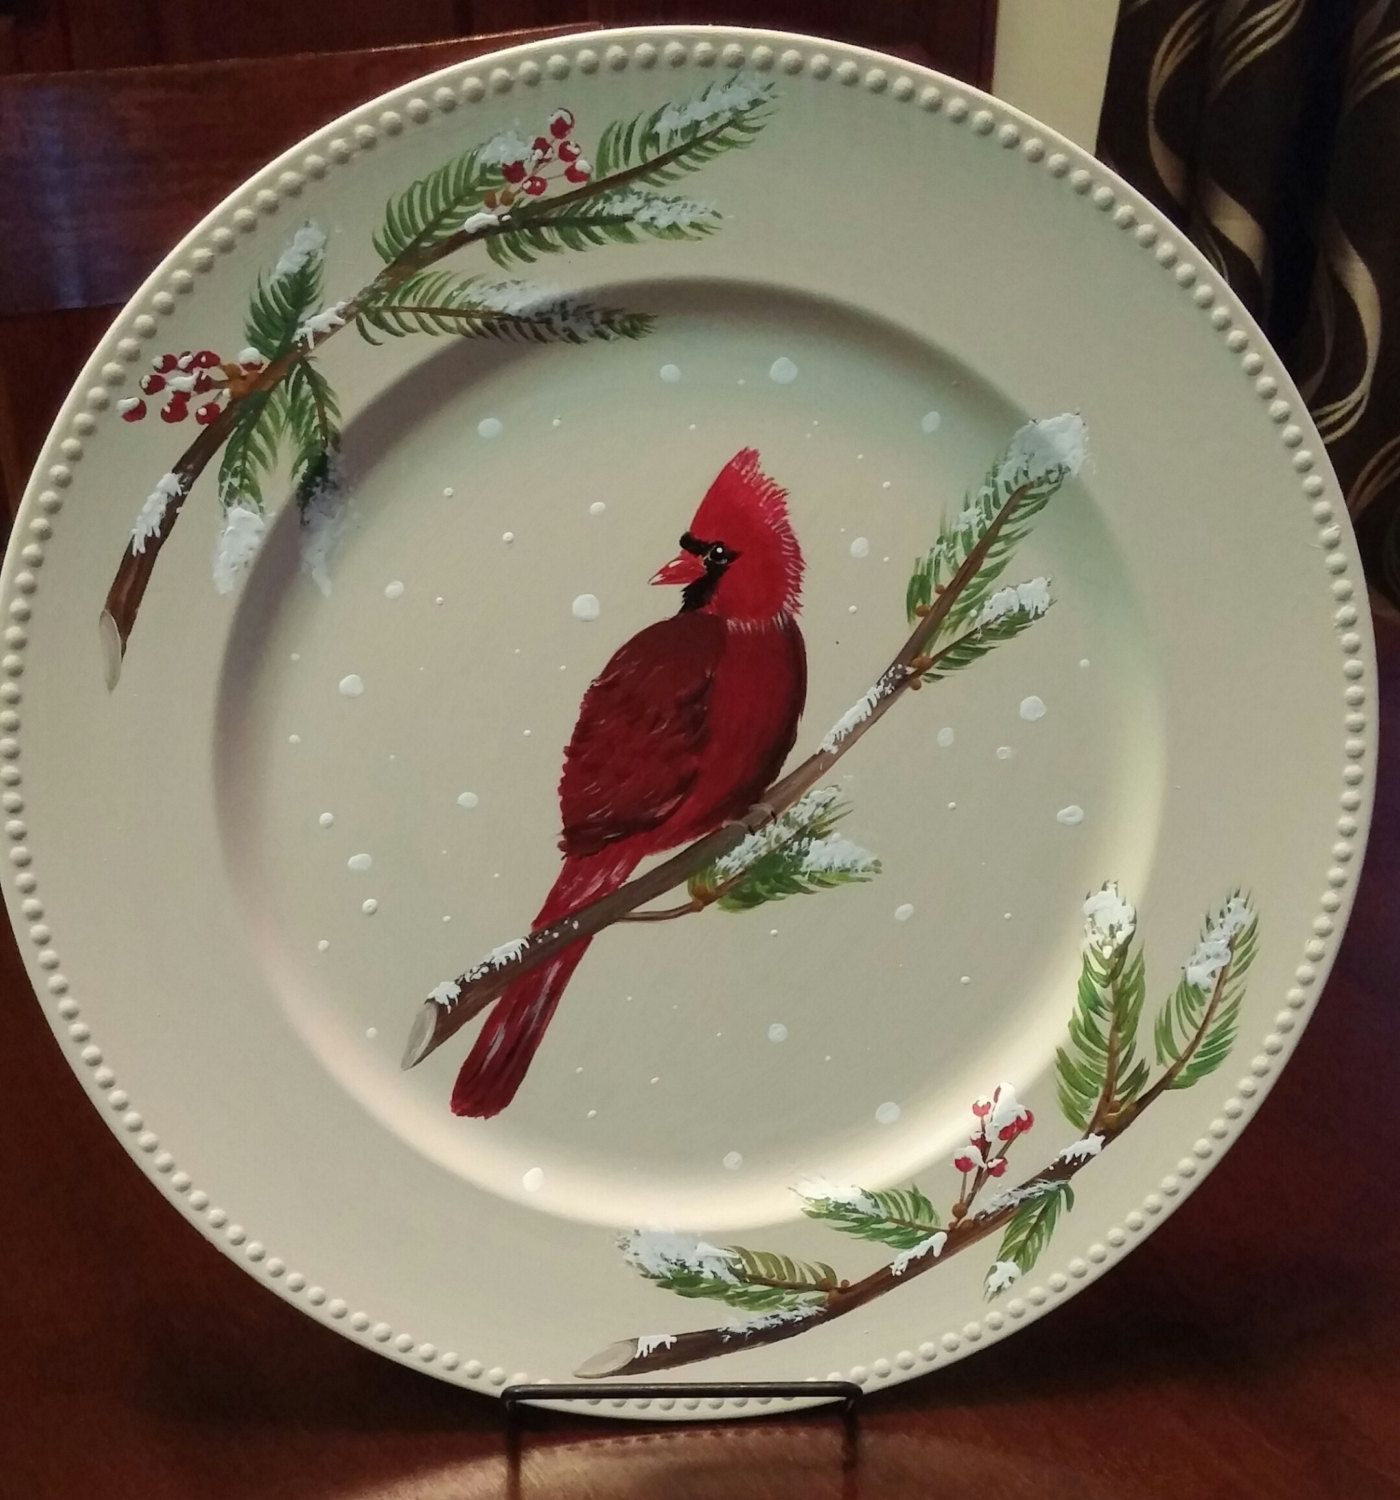 Decorative plate winter plate Christmas decor hand painted plate decorative platter & Decorative plate winter plate Christmas decor hand painted plate ...